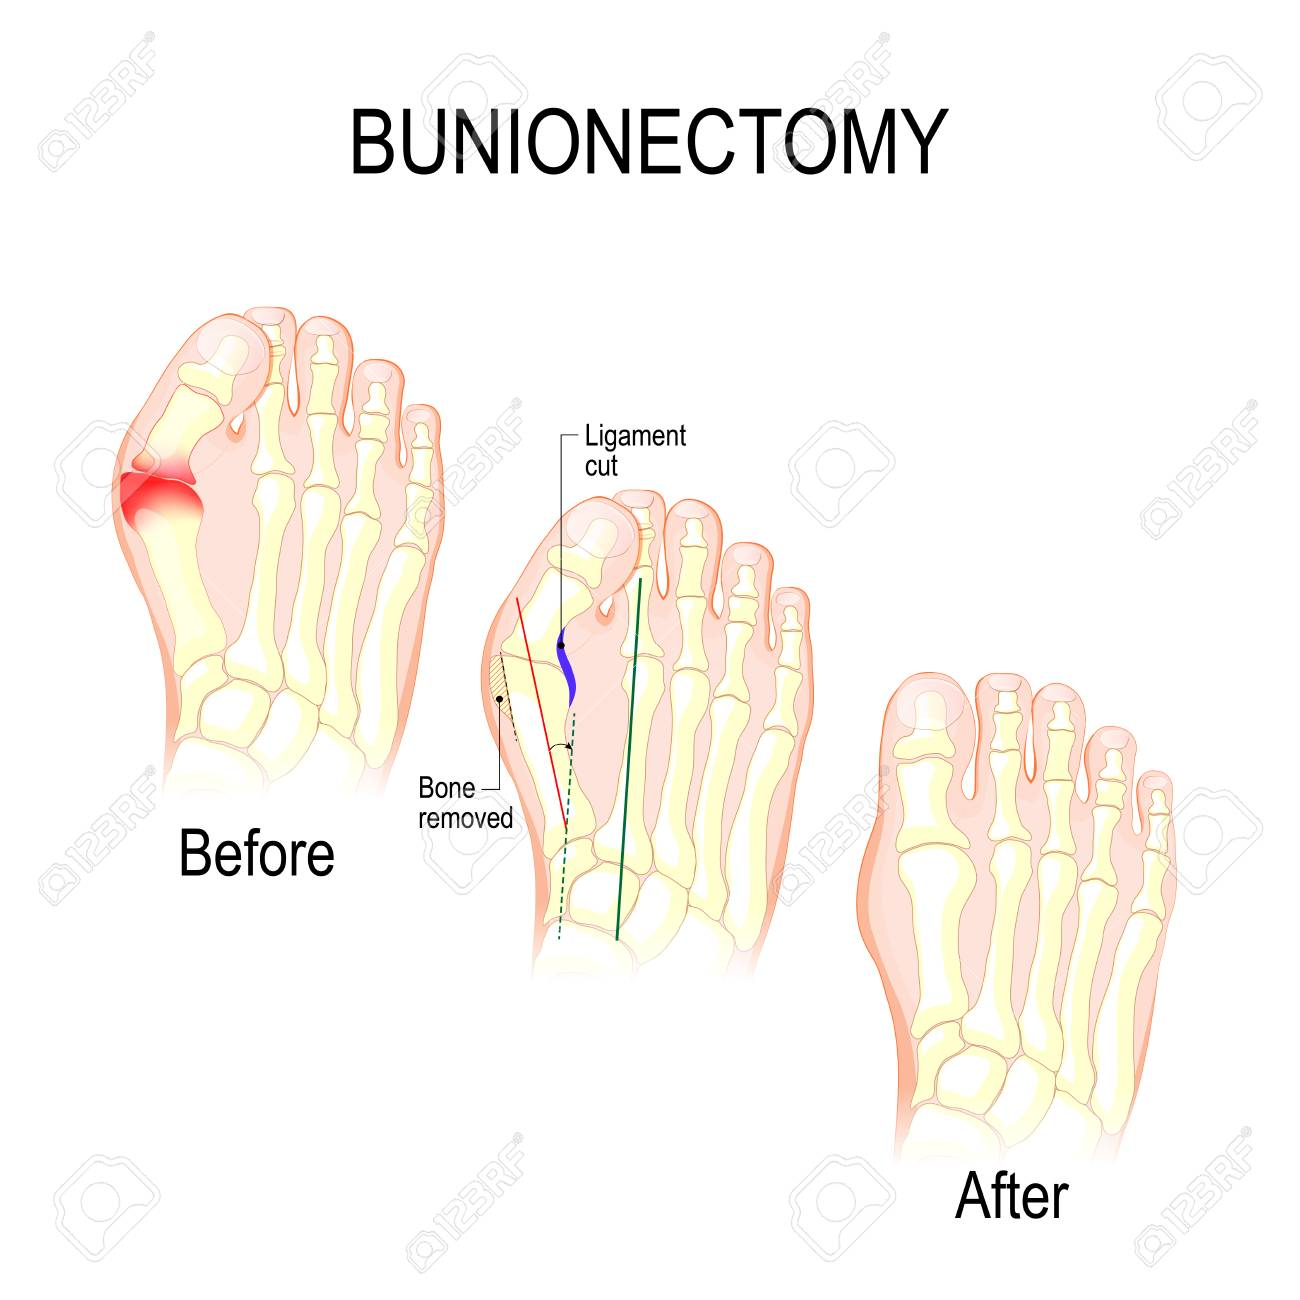 Bunionectomy Is A Procedure To Correct Of Pathologies And Deformity